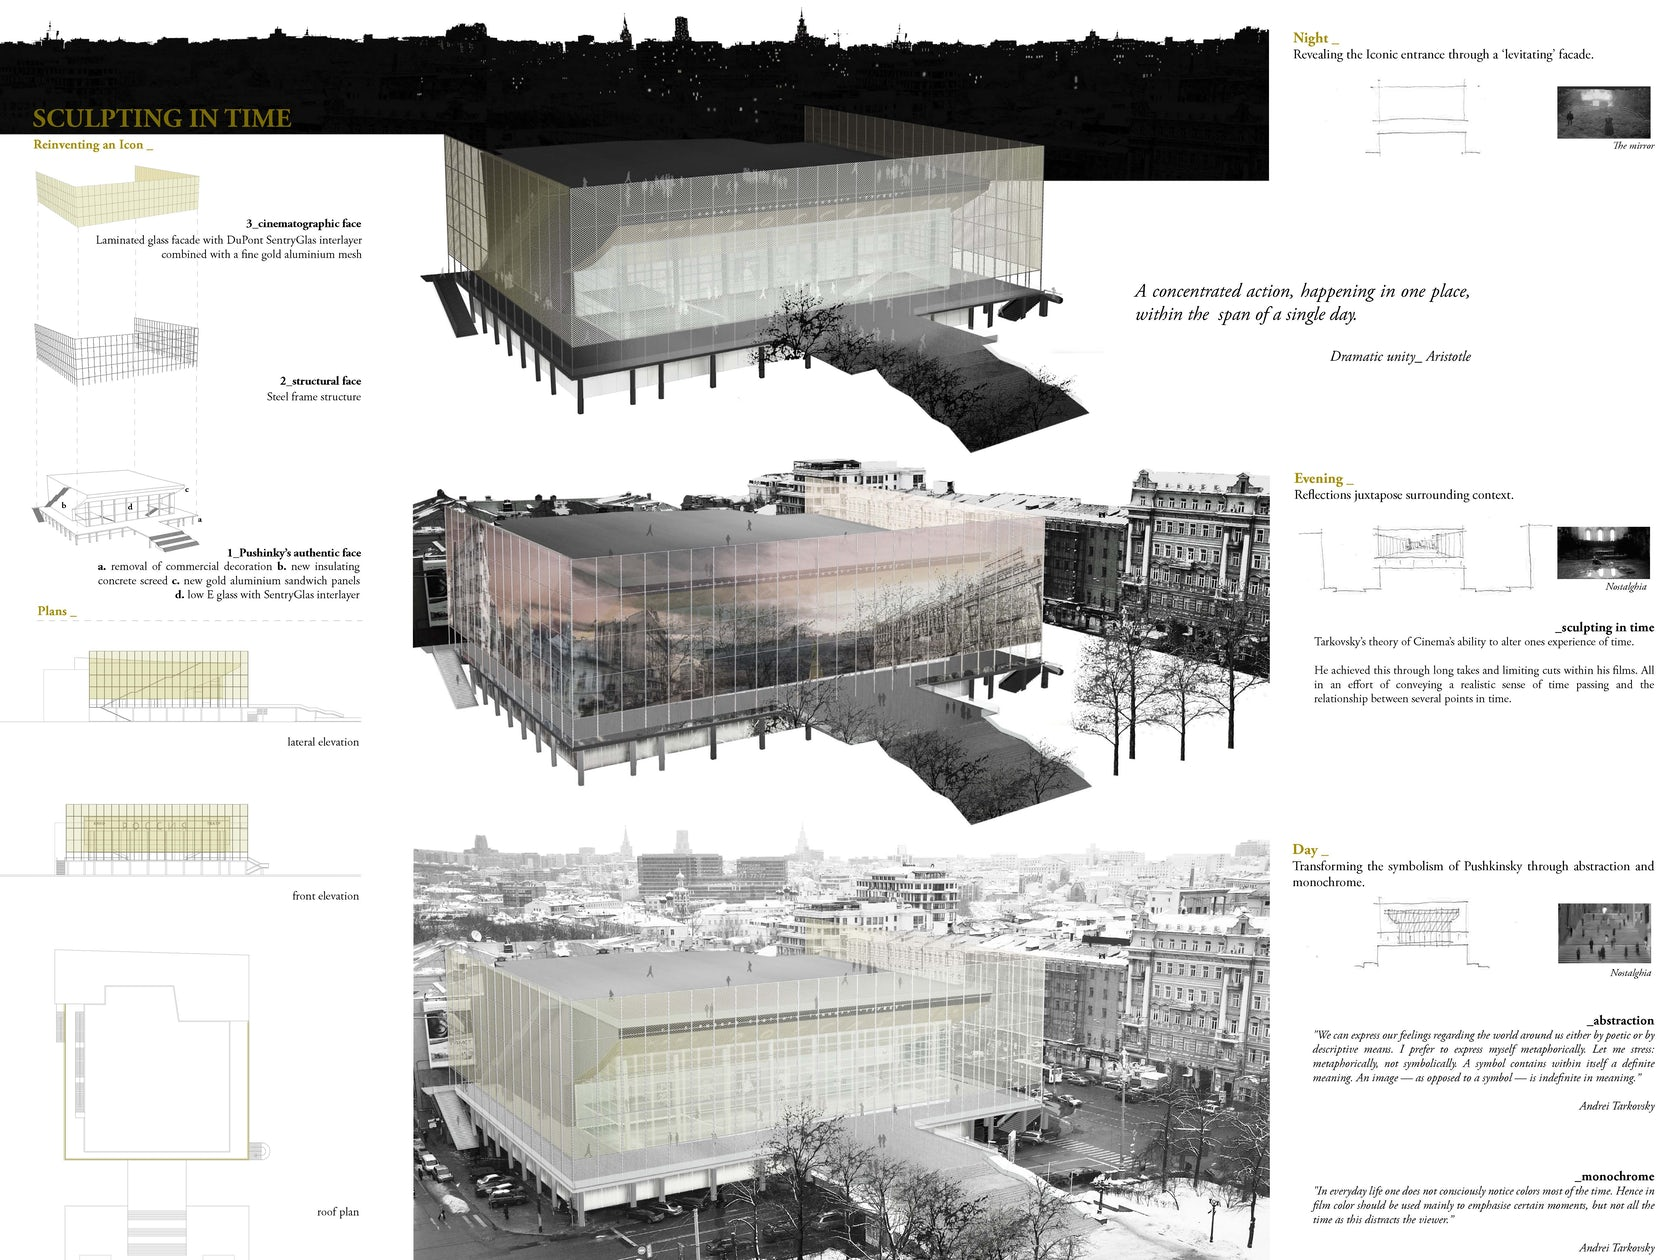 Sculpting in Time on Architizer